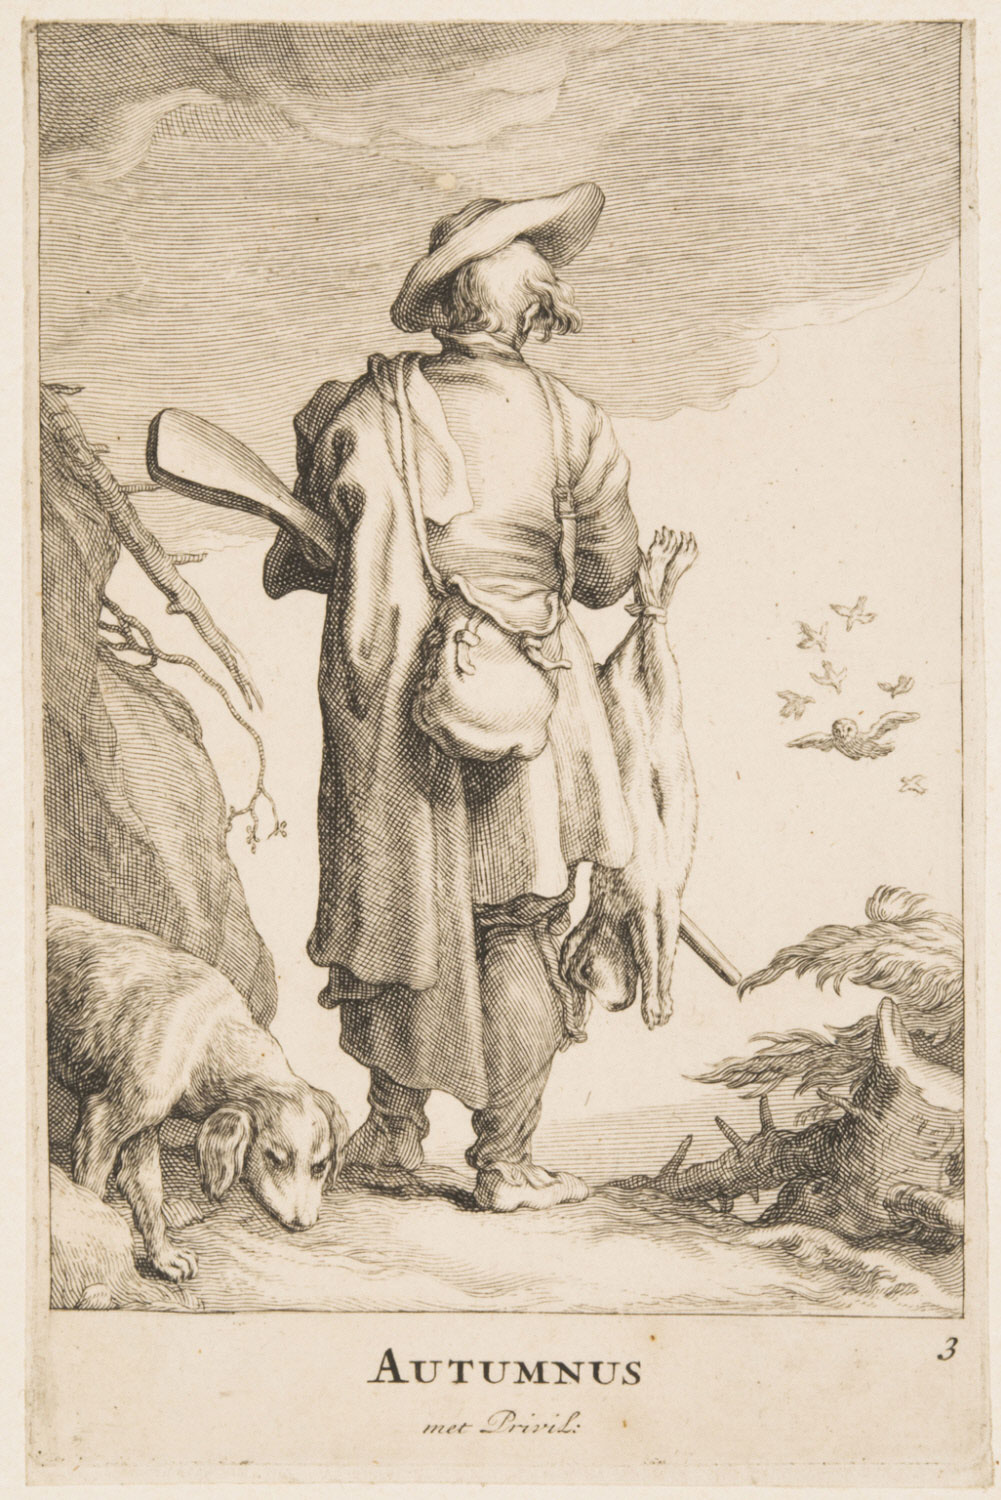 Autumn (A Hunter with a Dog and a Dead Rabbit)